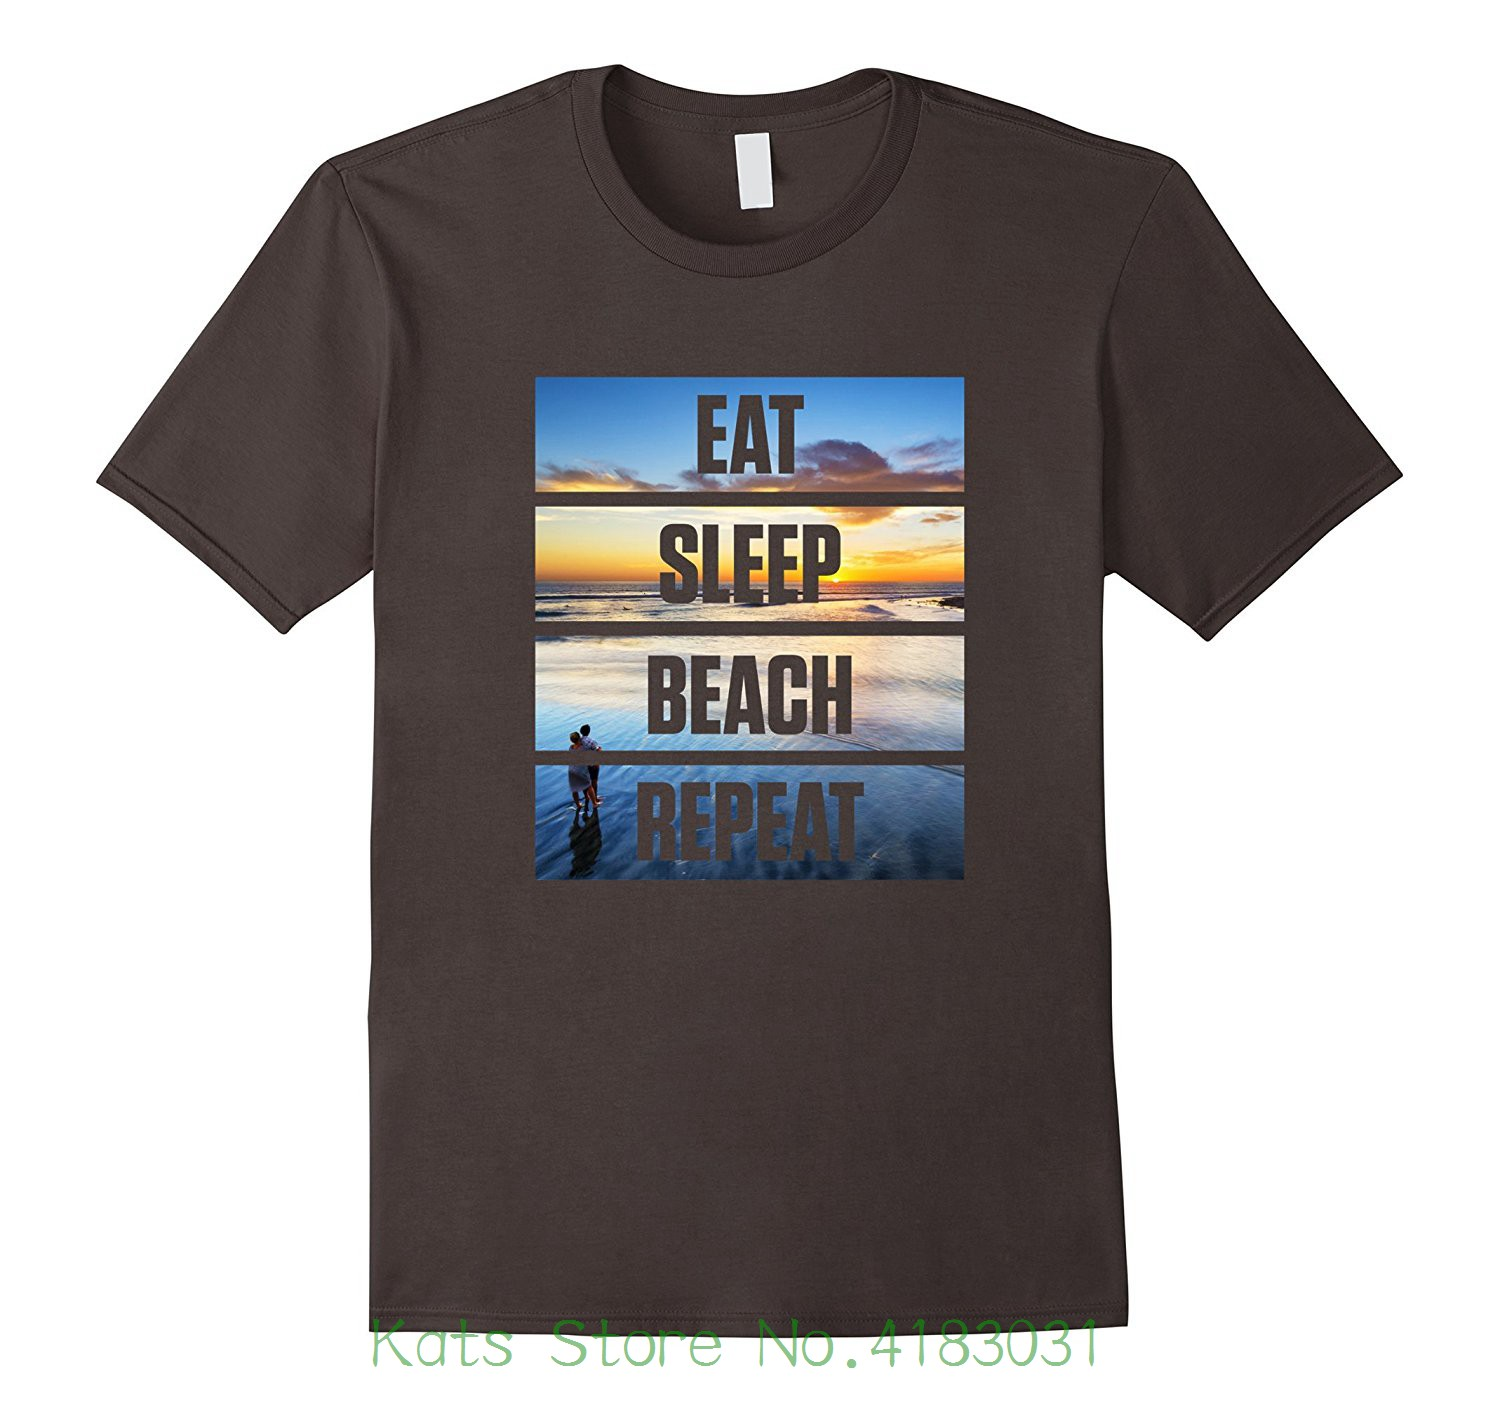 Cute Eat Sleep Beach Repeat Vacation T-shirt Good Quality Brand Cotton Shirt Summer Style Cool Shirts